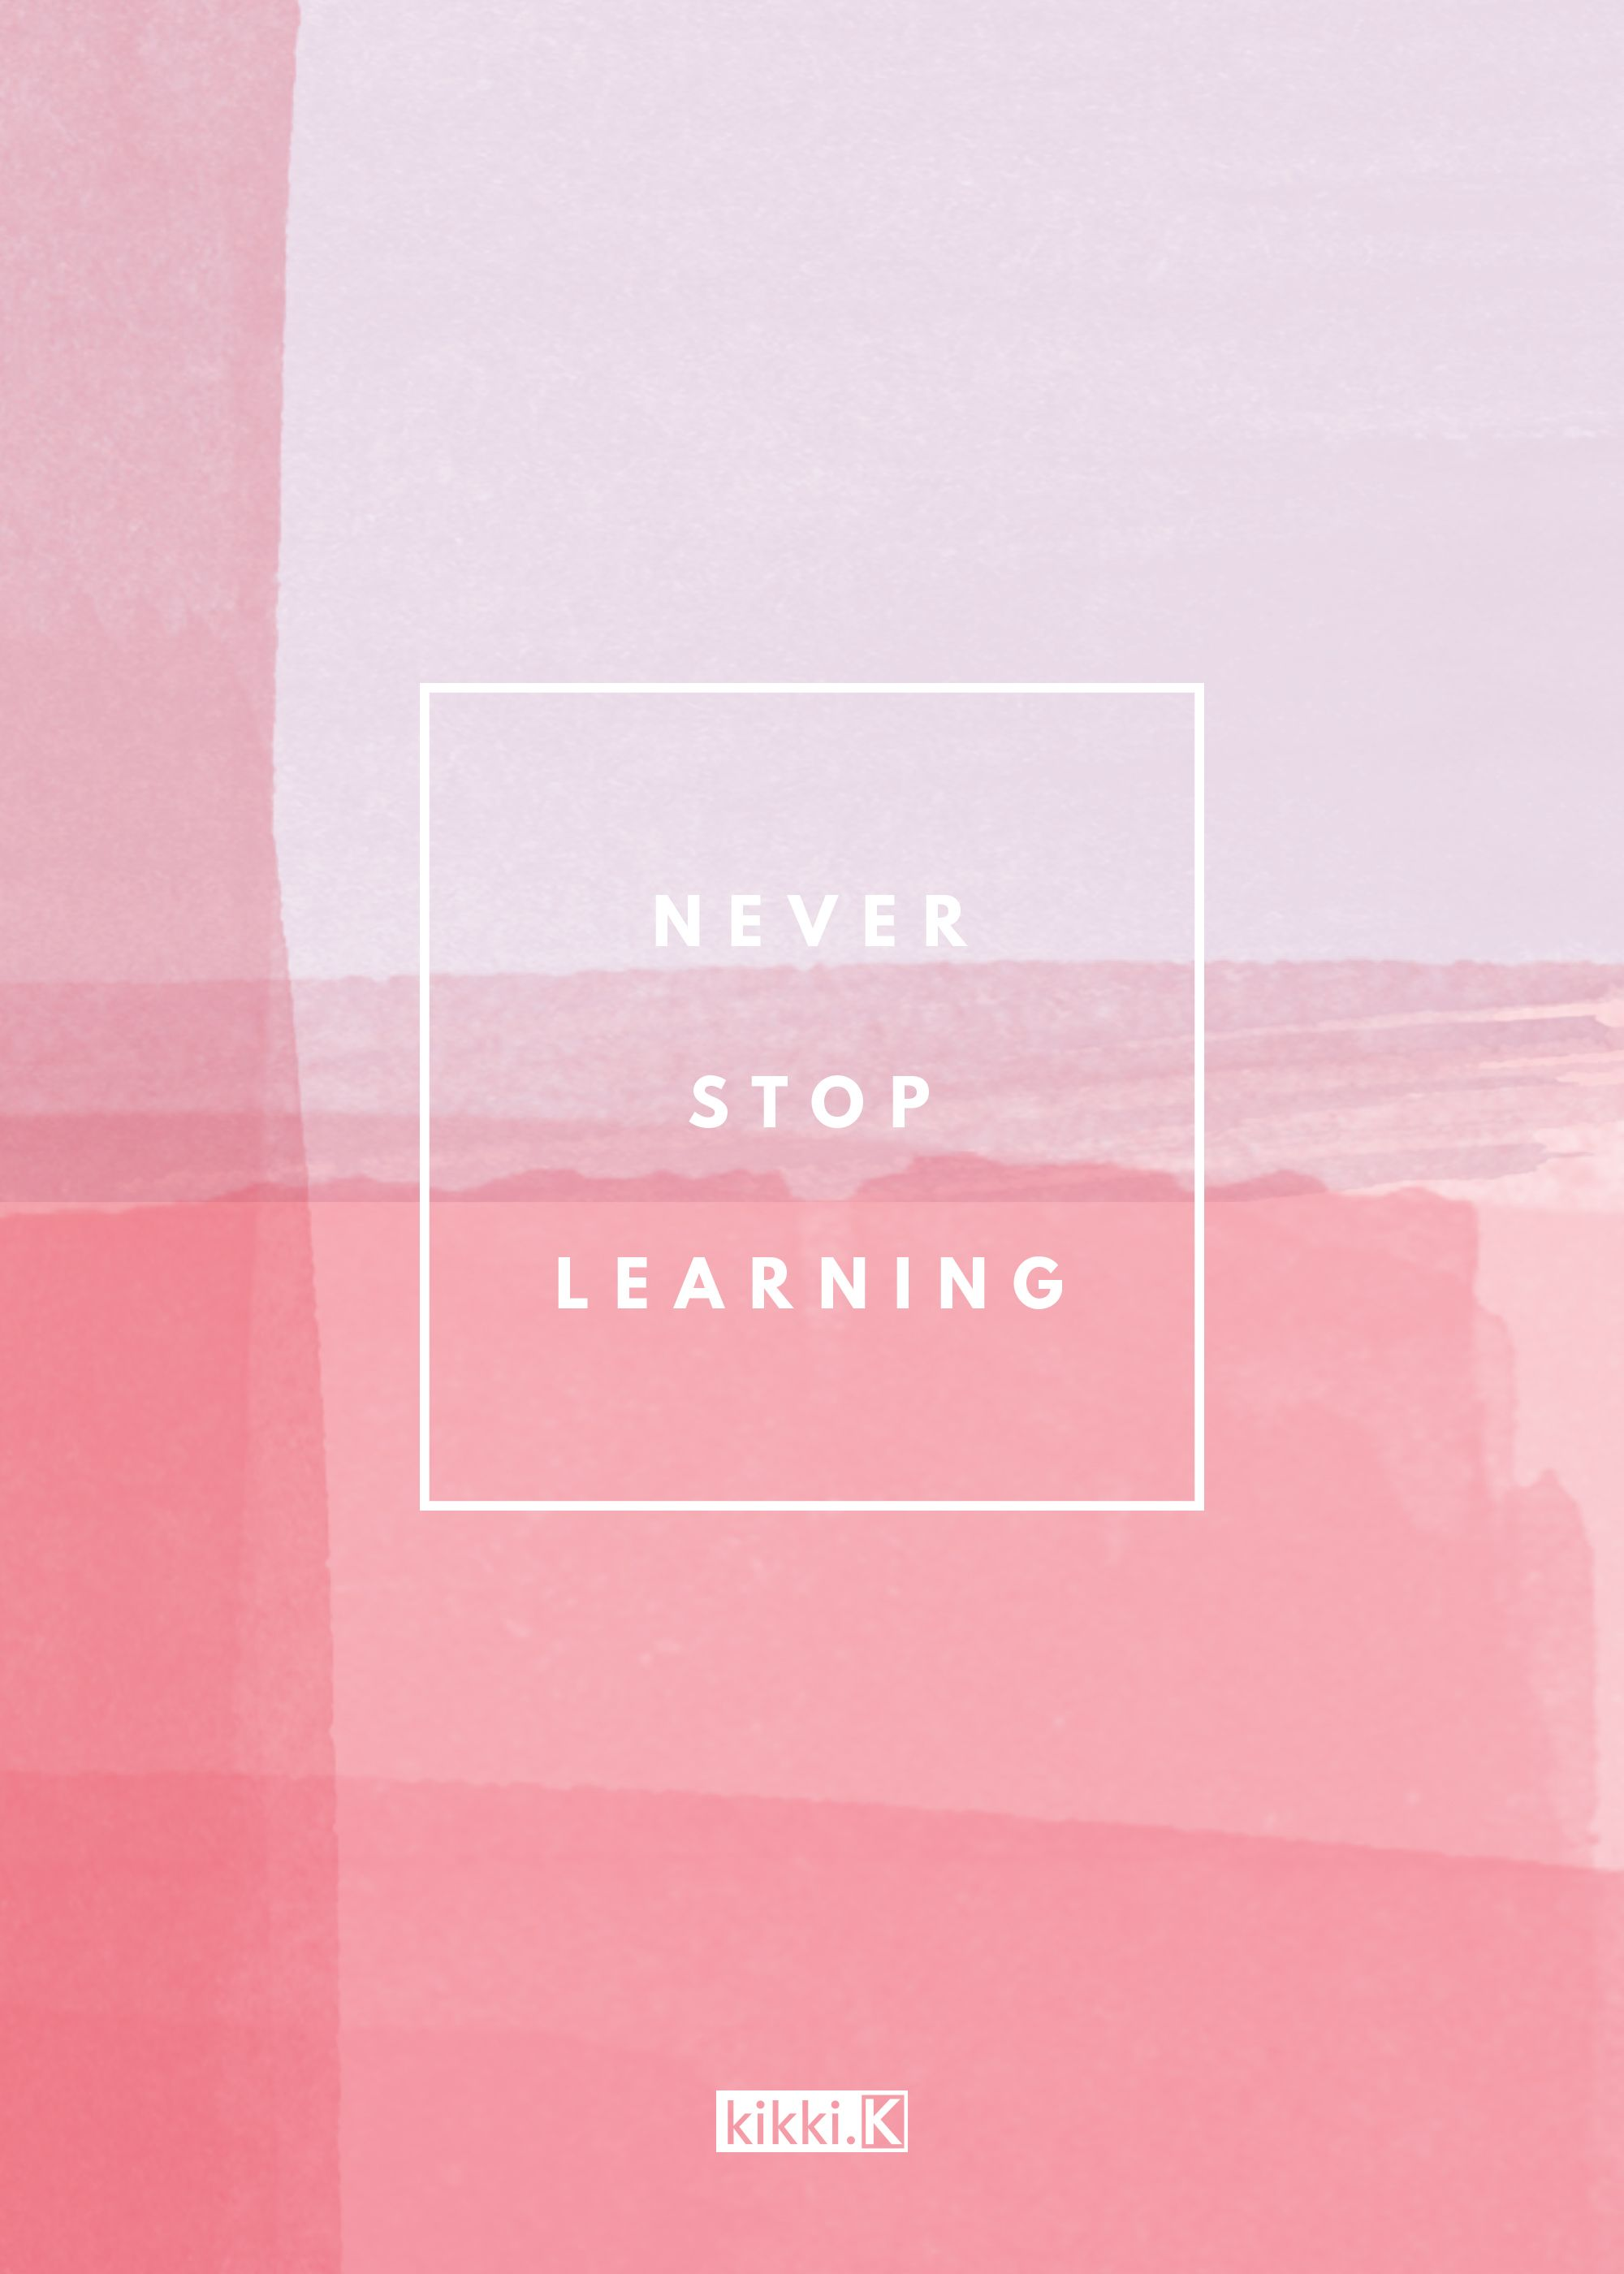 Inspiring quote: Never stop learning. Choose a new hobby or skill and love learning something fun and new.